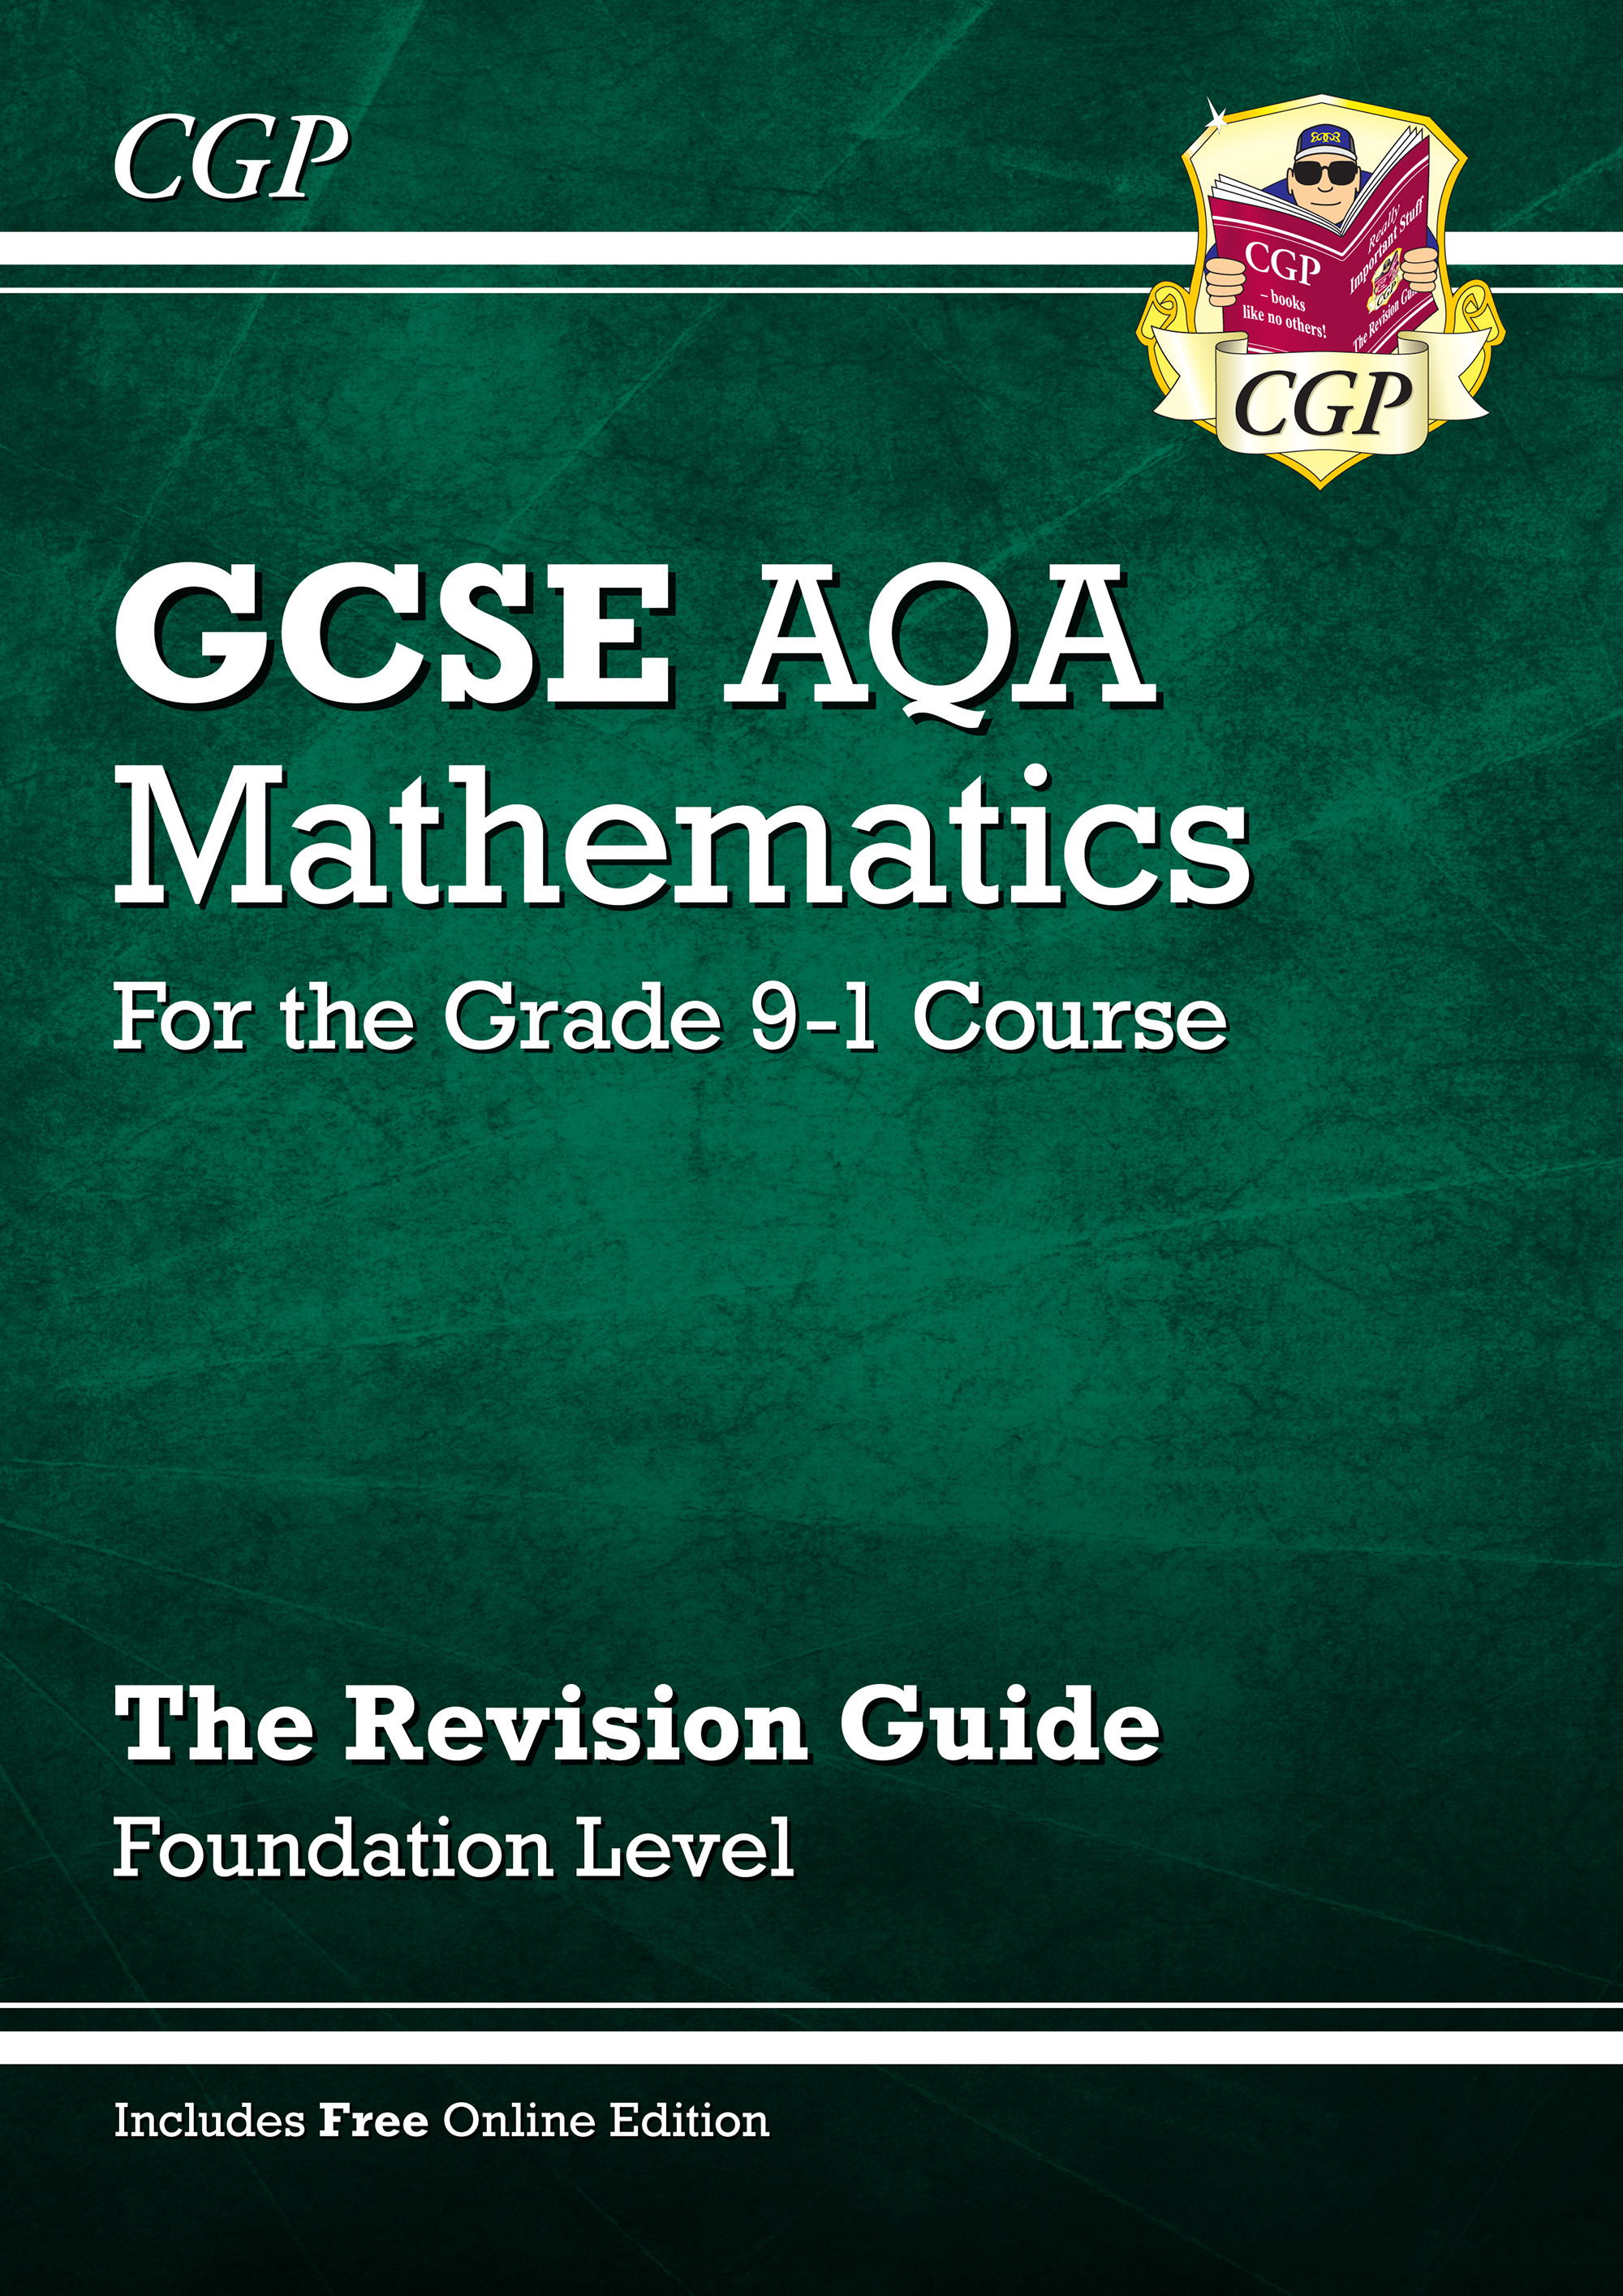 MQFR46 - GCSE Maths AQA Revision Guide: Foundation - for the Grade 9-1 Course (with Online Edition)